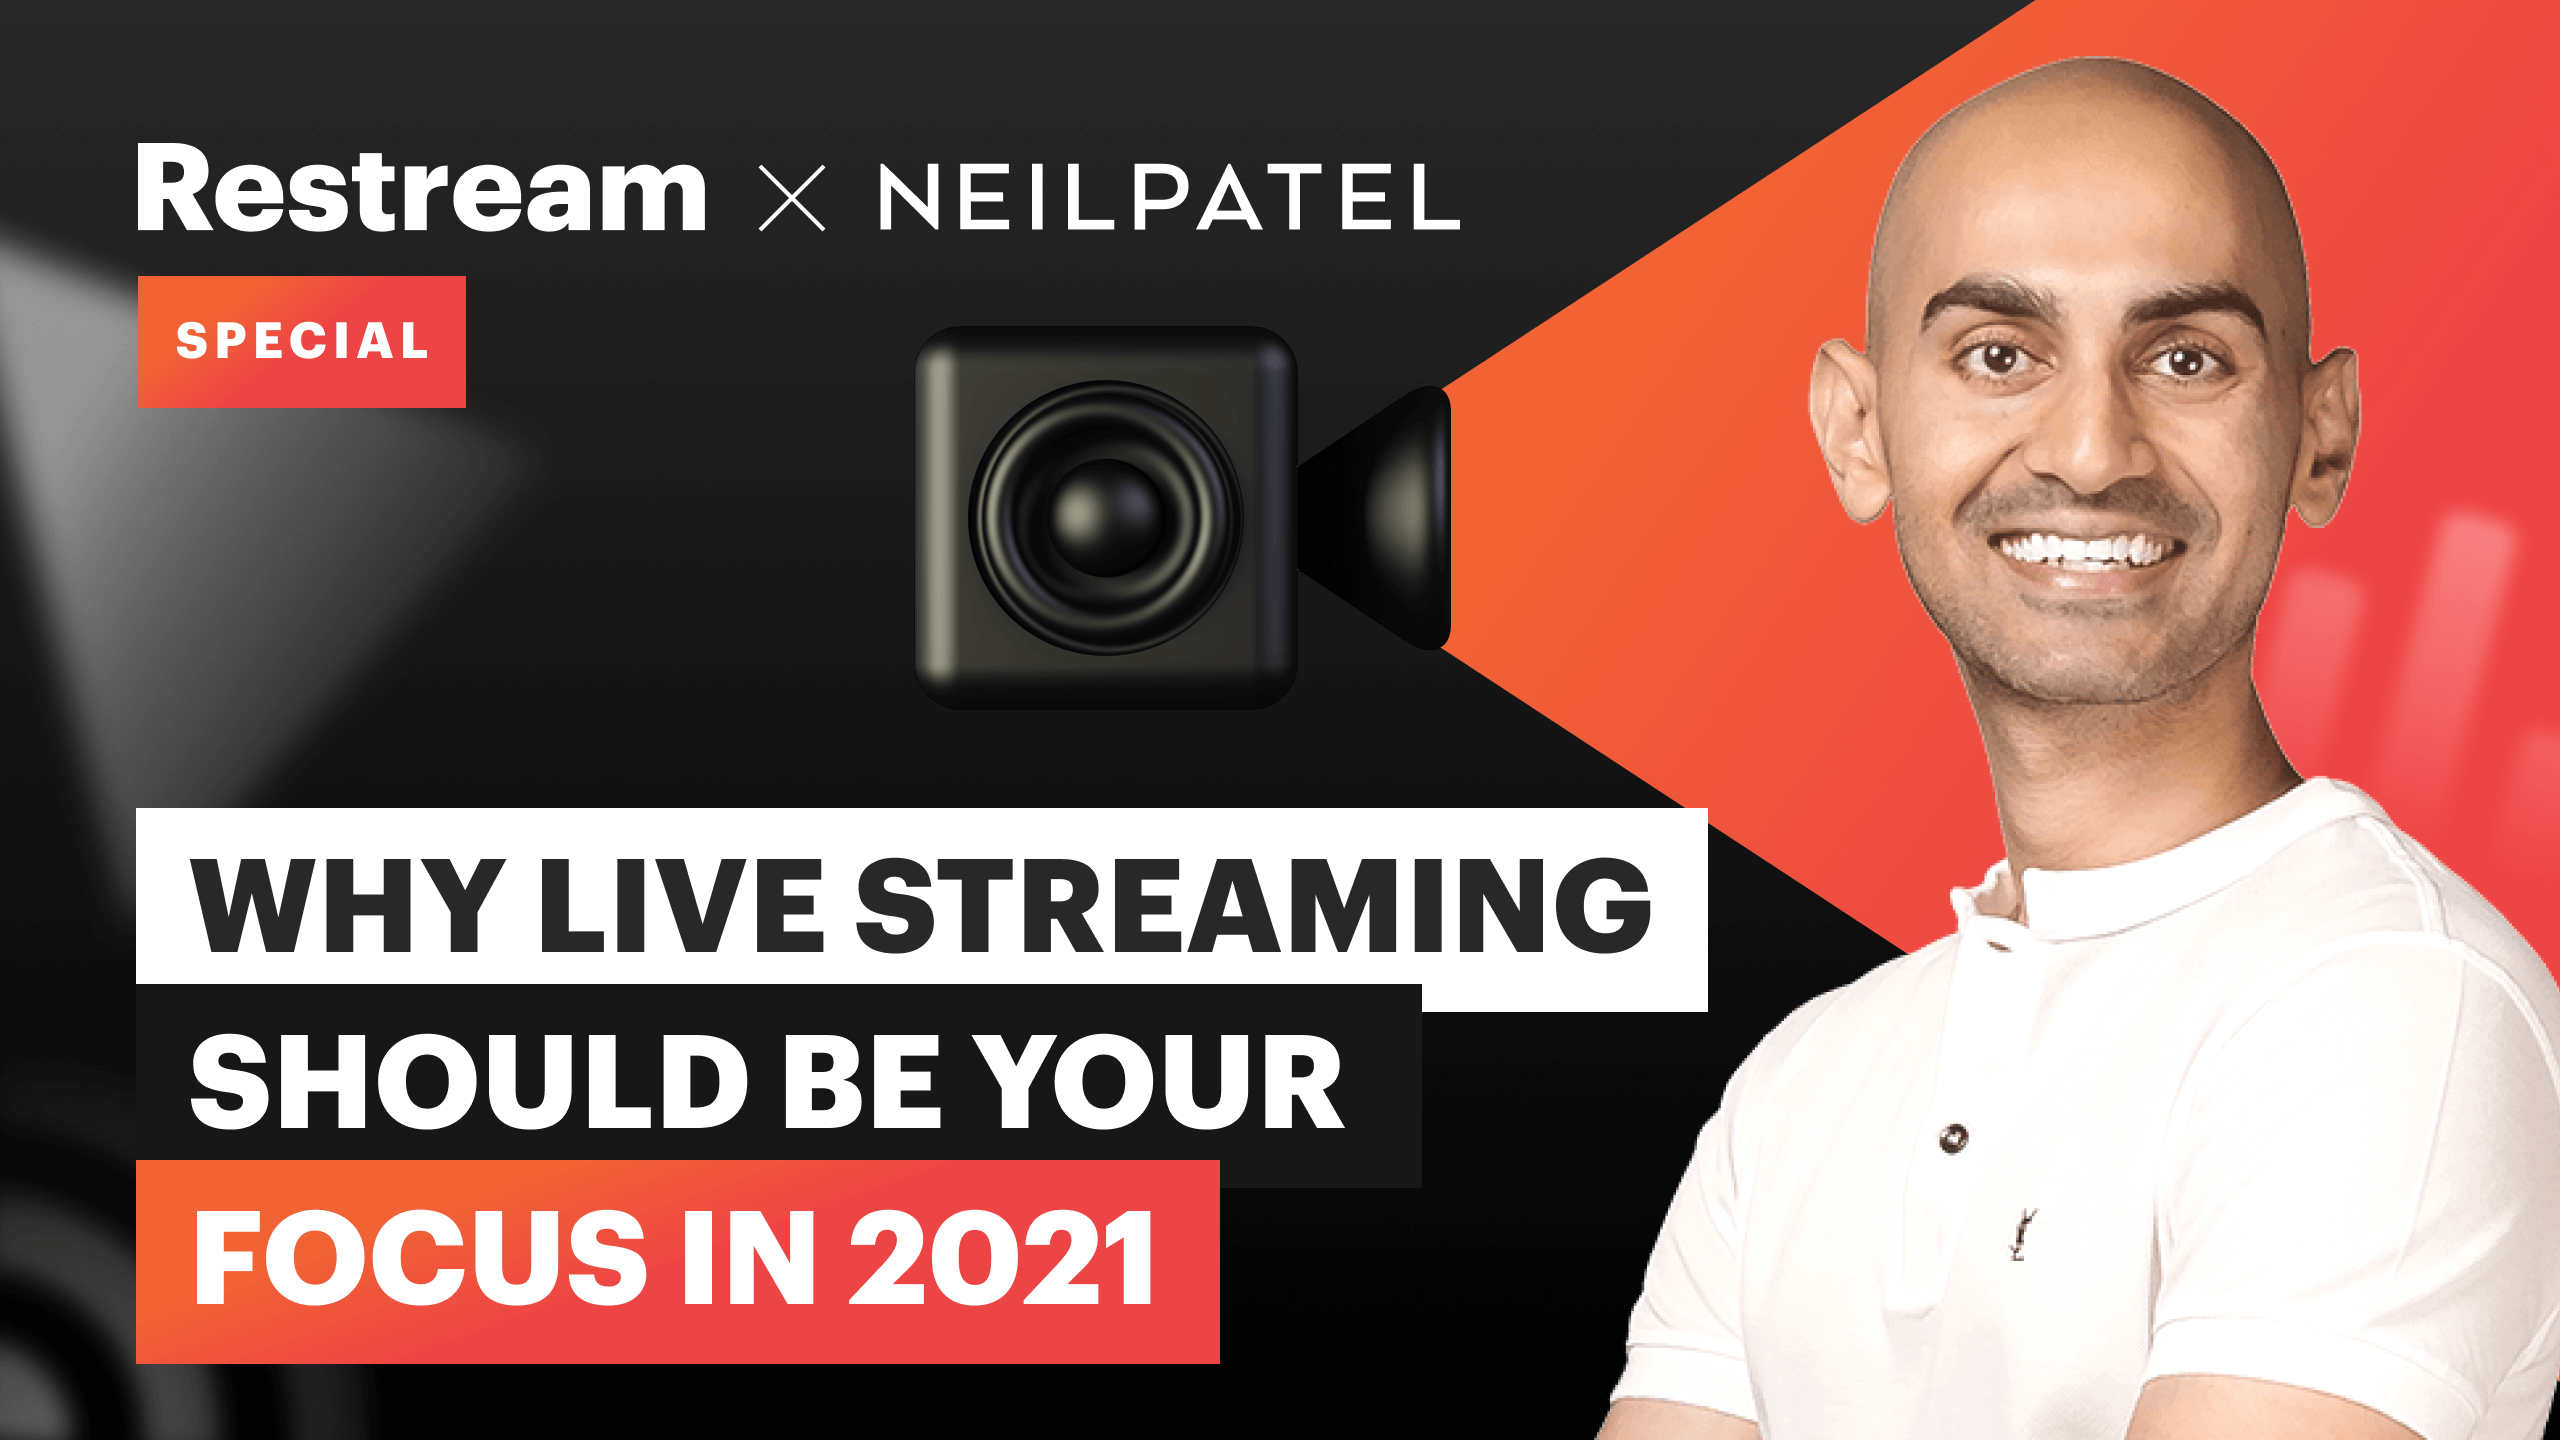 15 questions for Neil Patel about live streaming in 2021